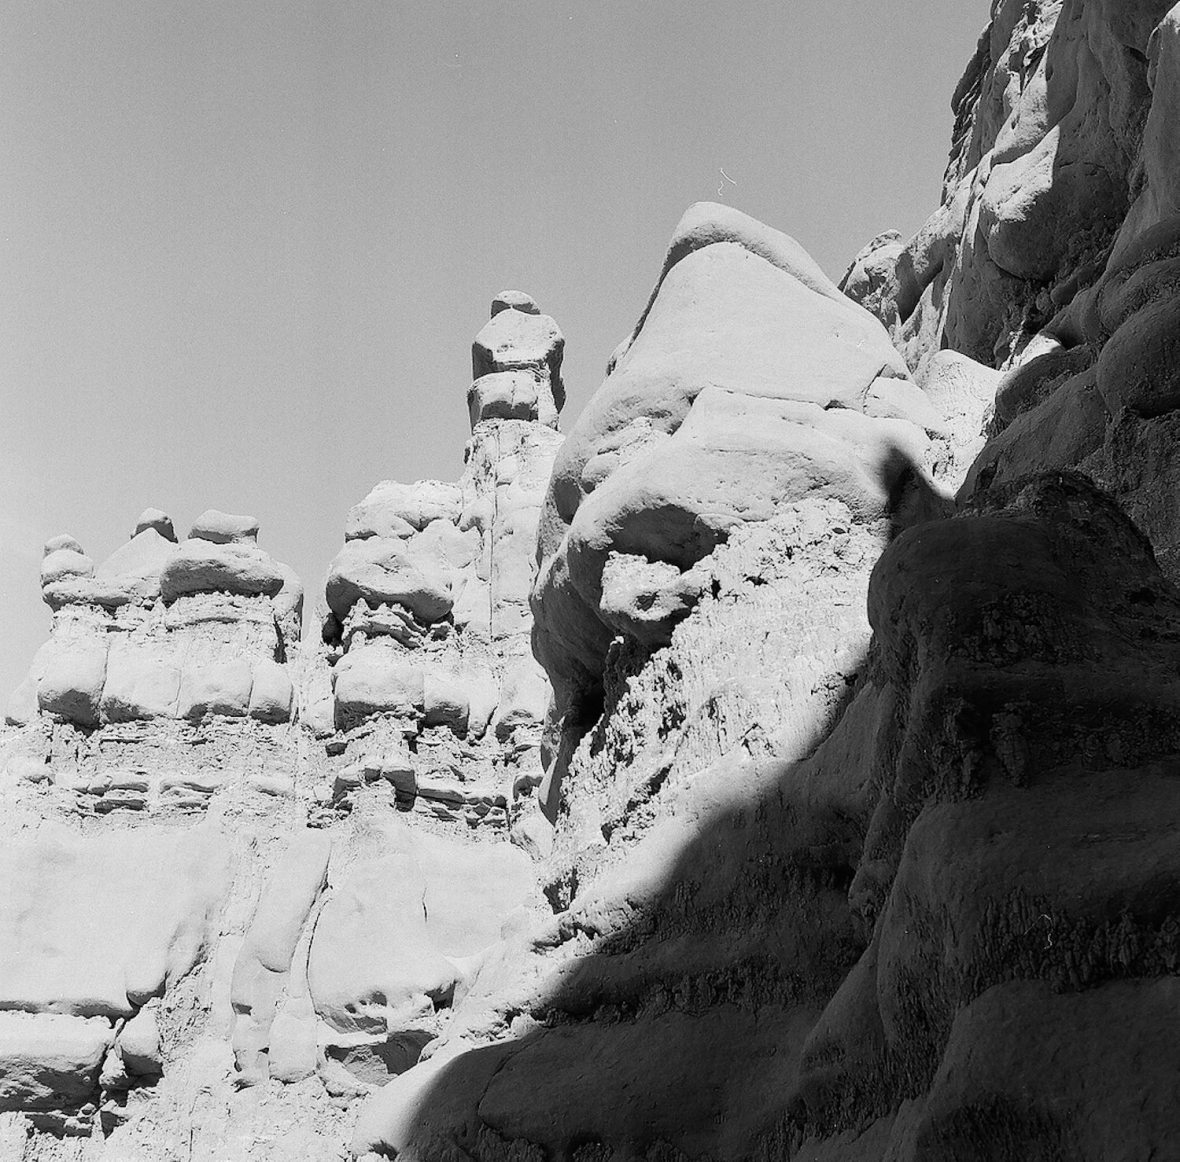 Medium format 120 mm monochrome film photography Goblin Valley Utah state park